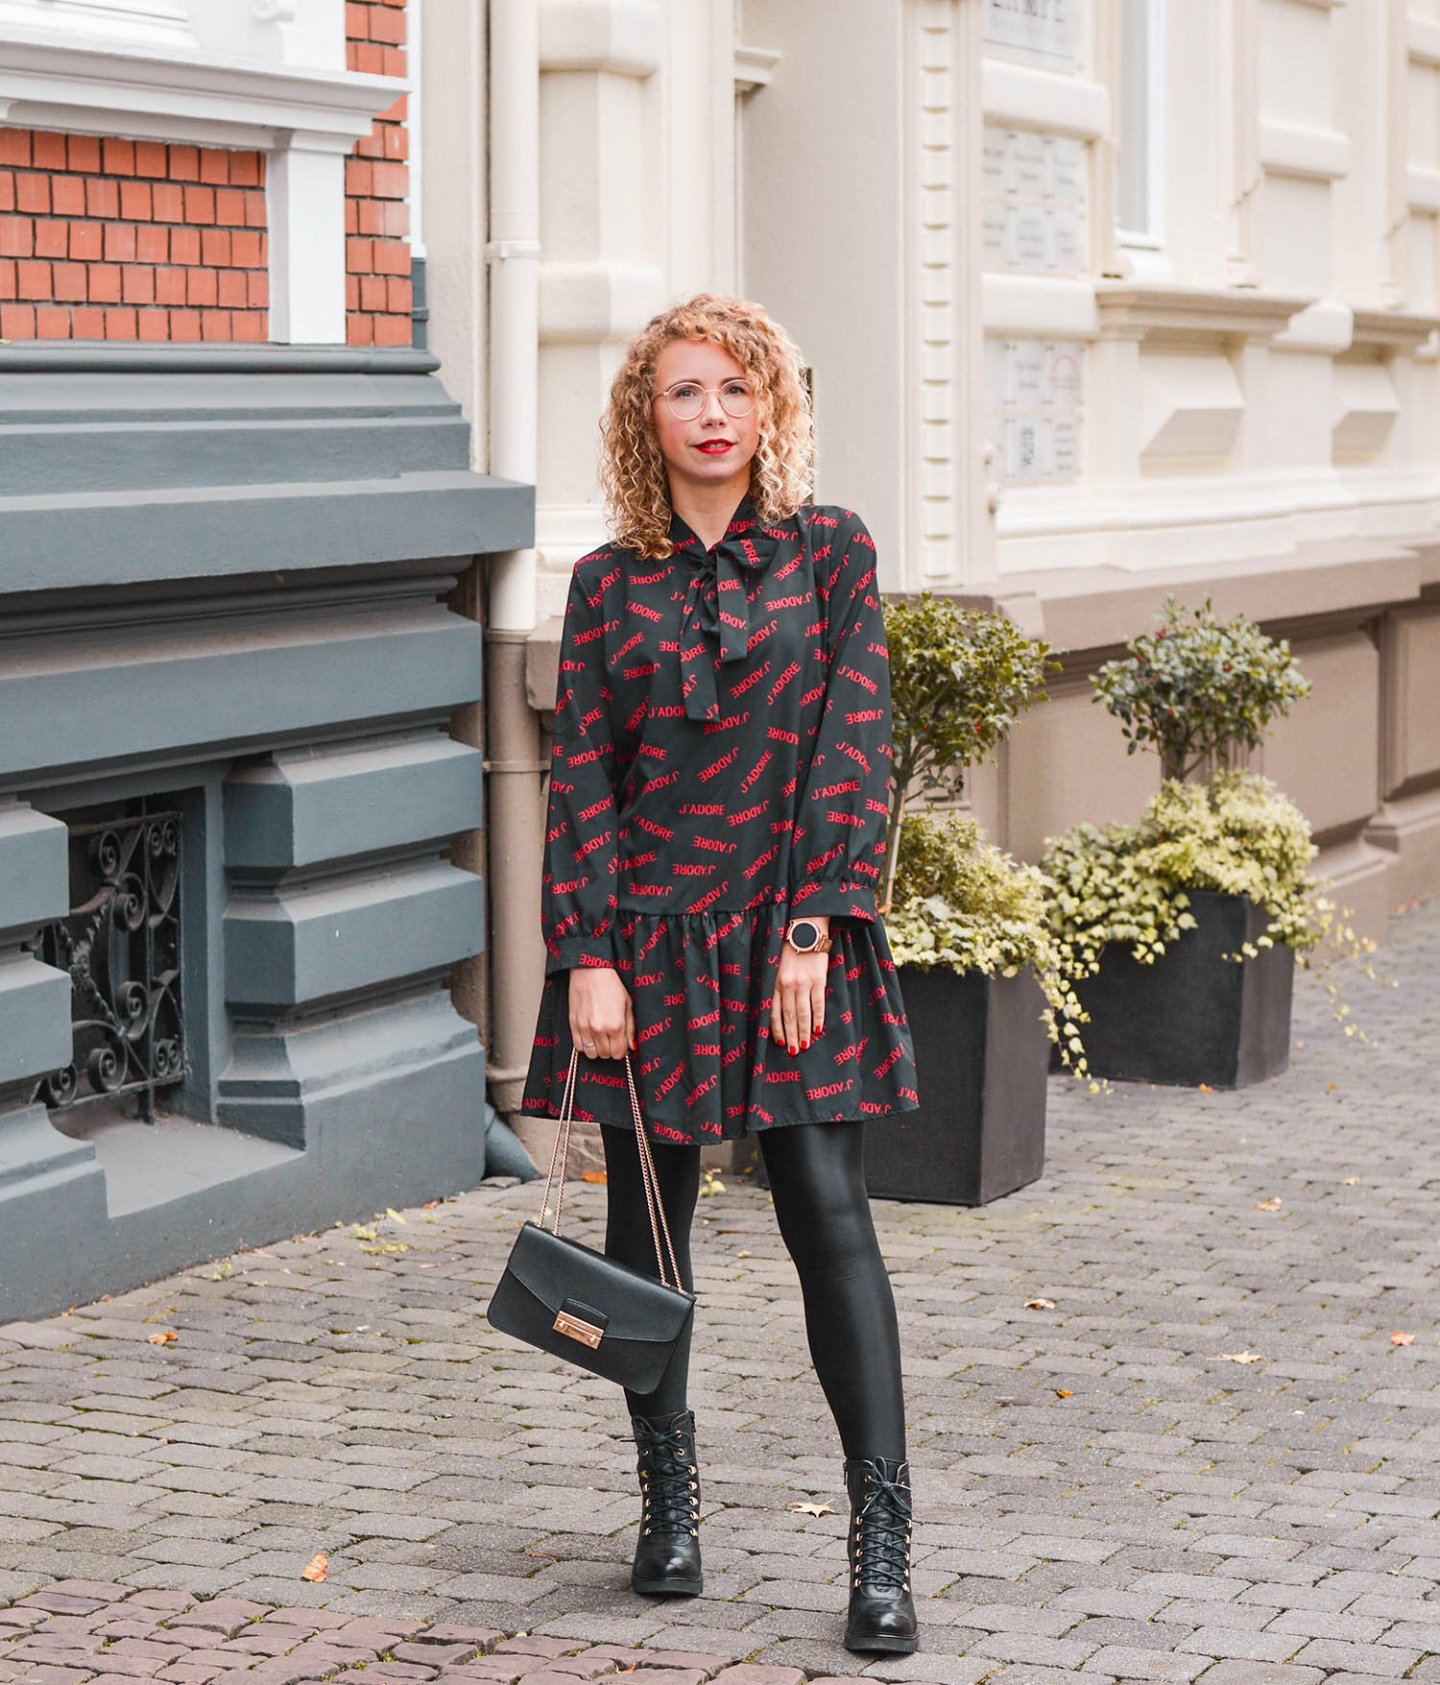 J'Adore Statement Dress und Combat Boots